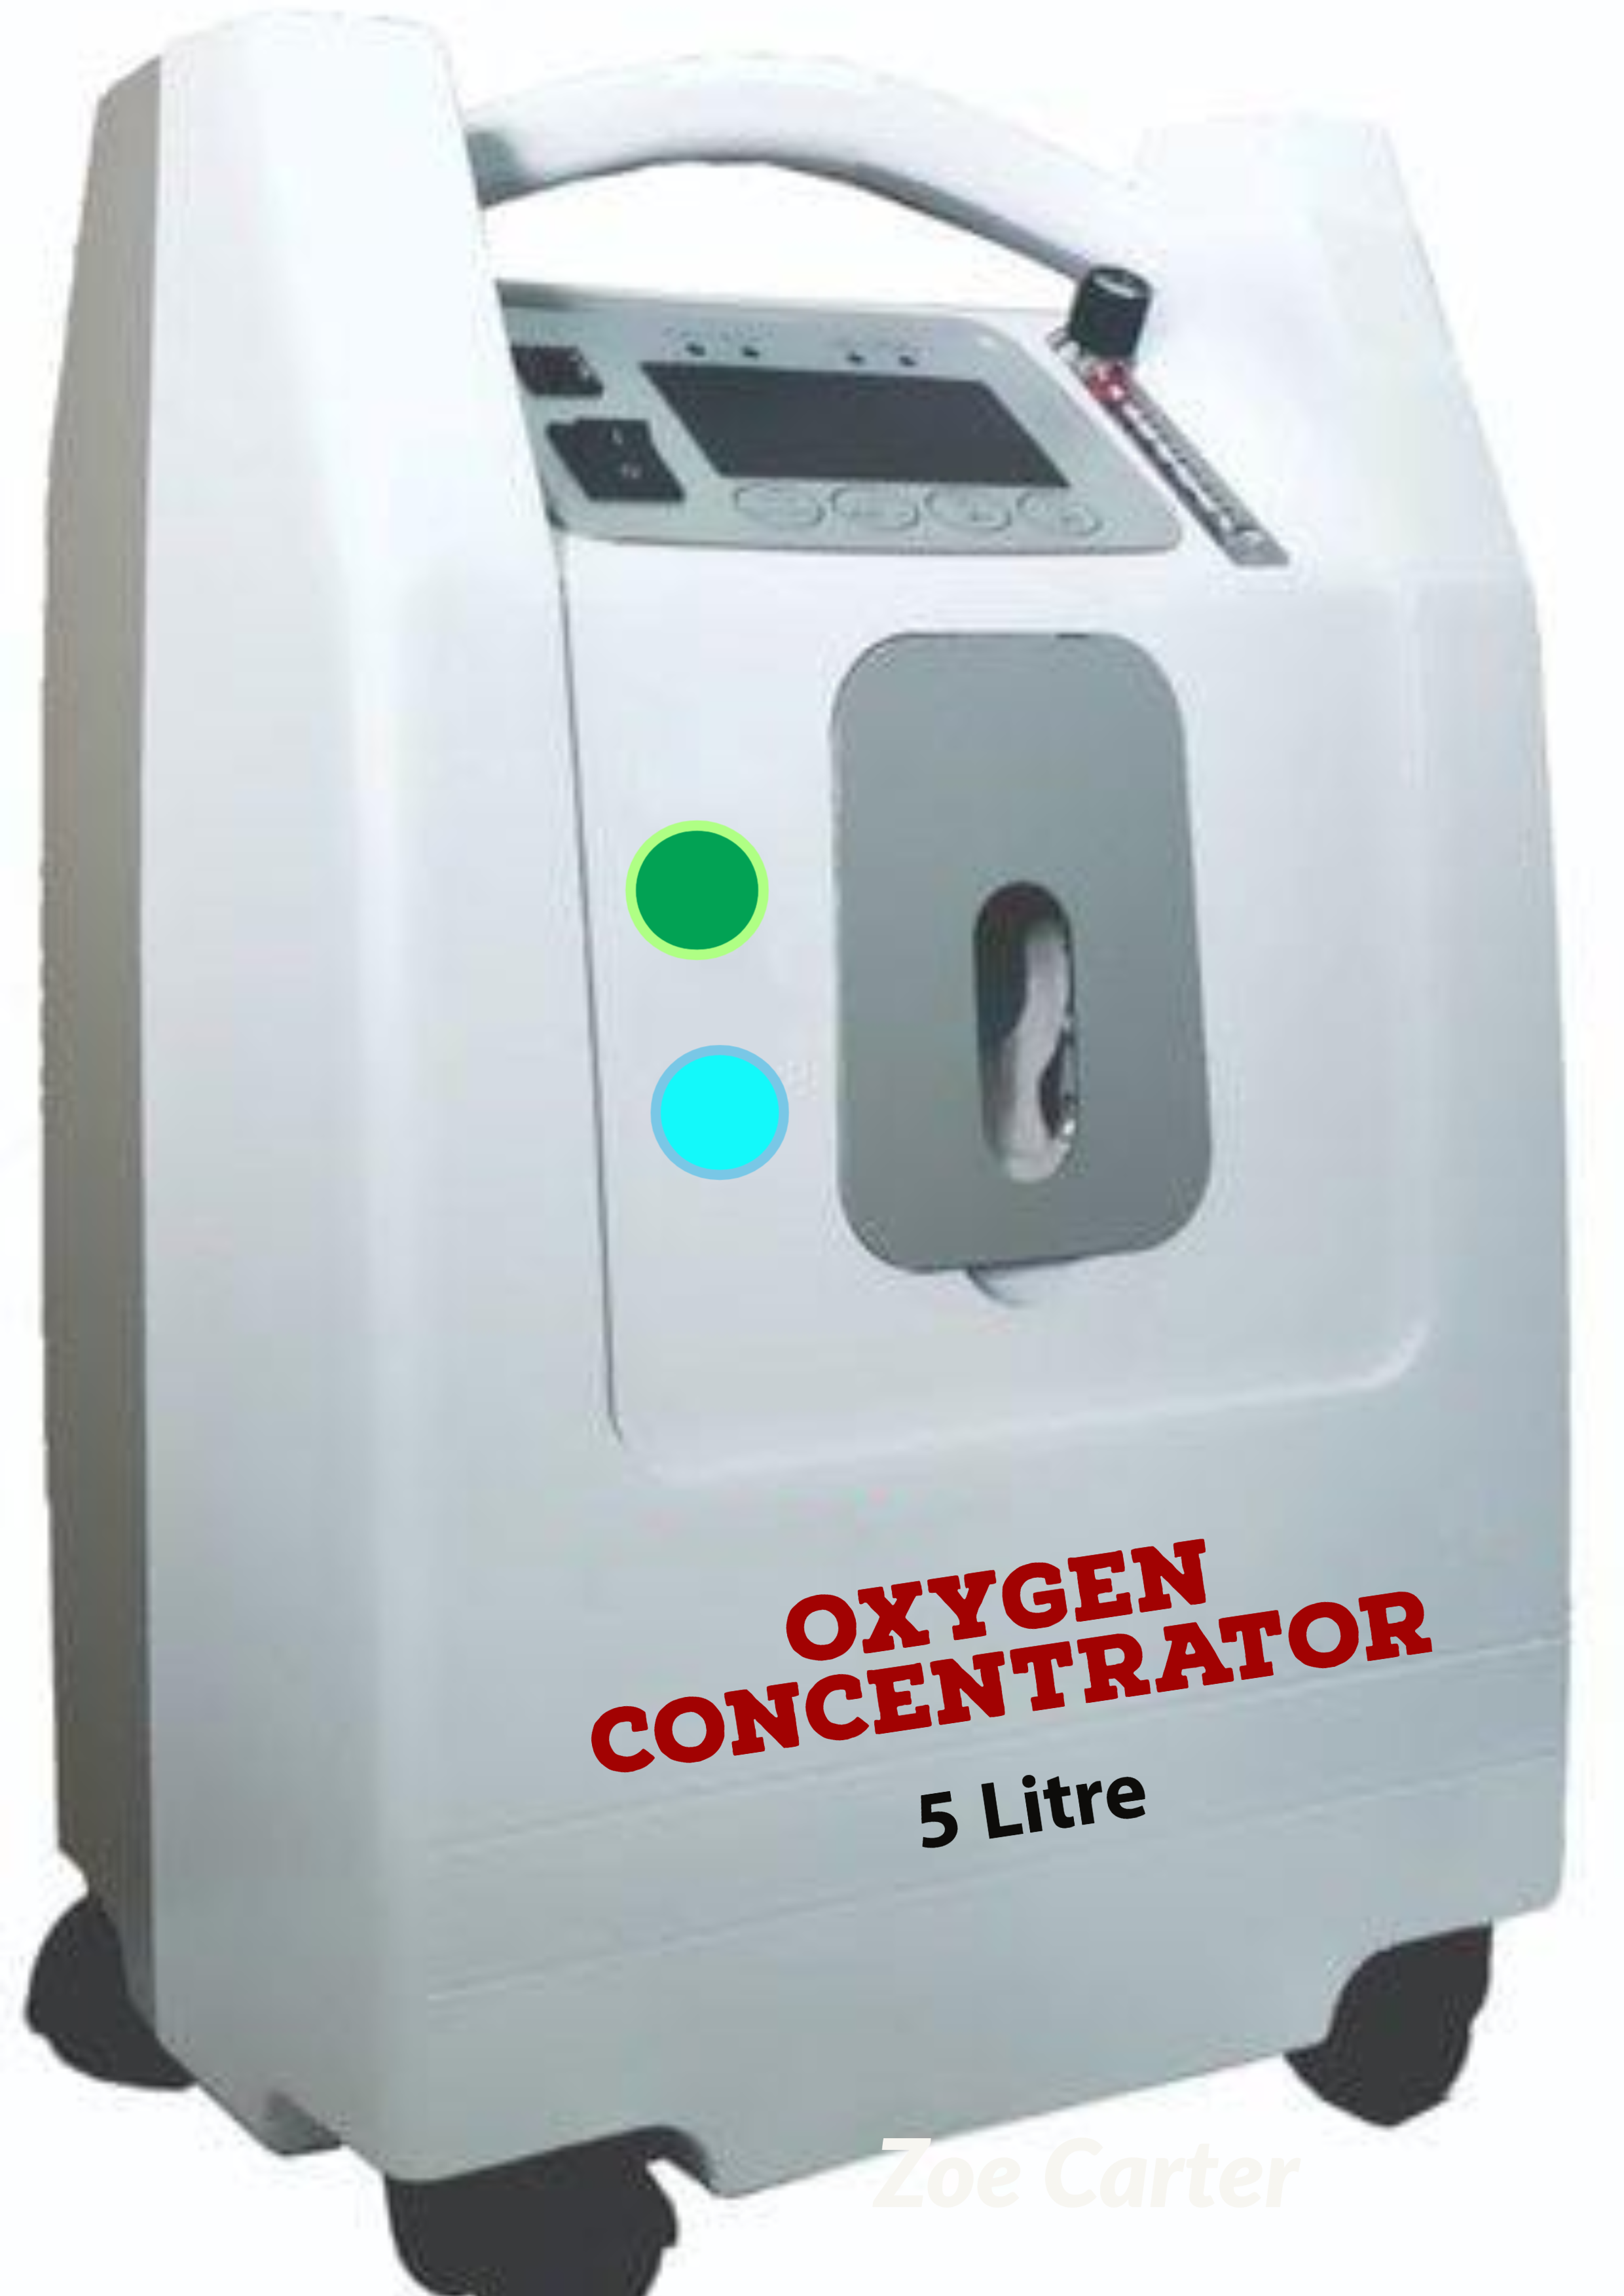 how does an oxygen concentrator work